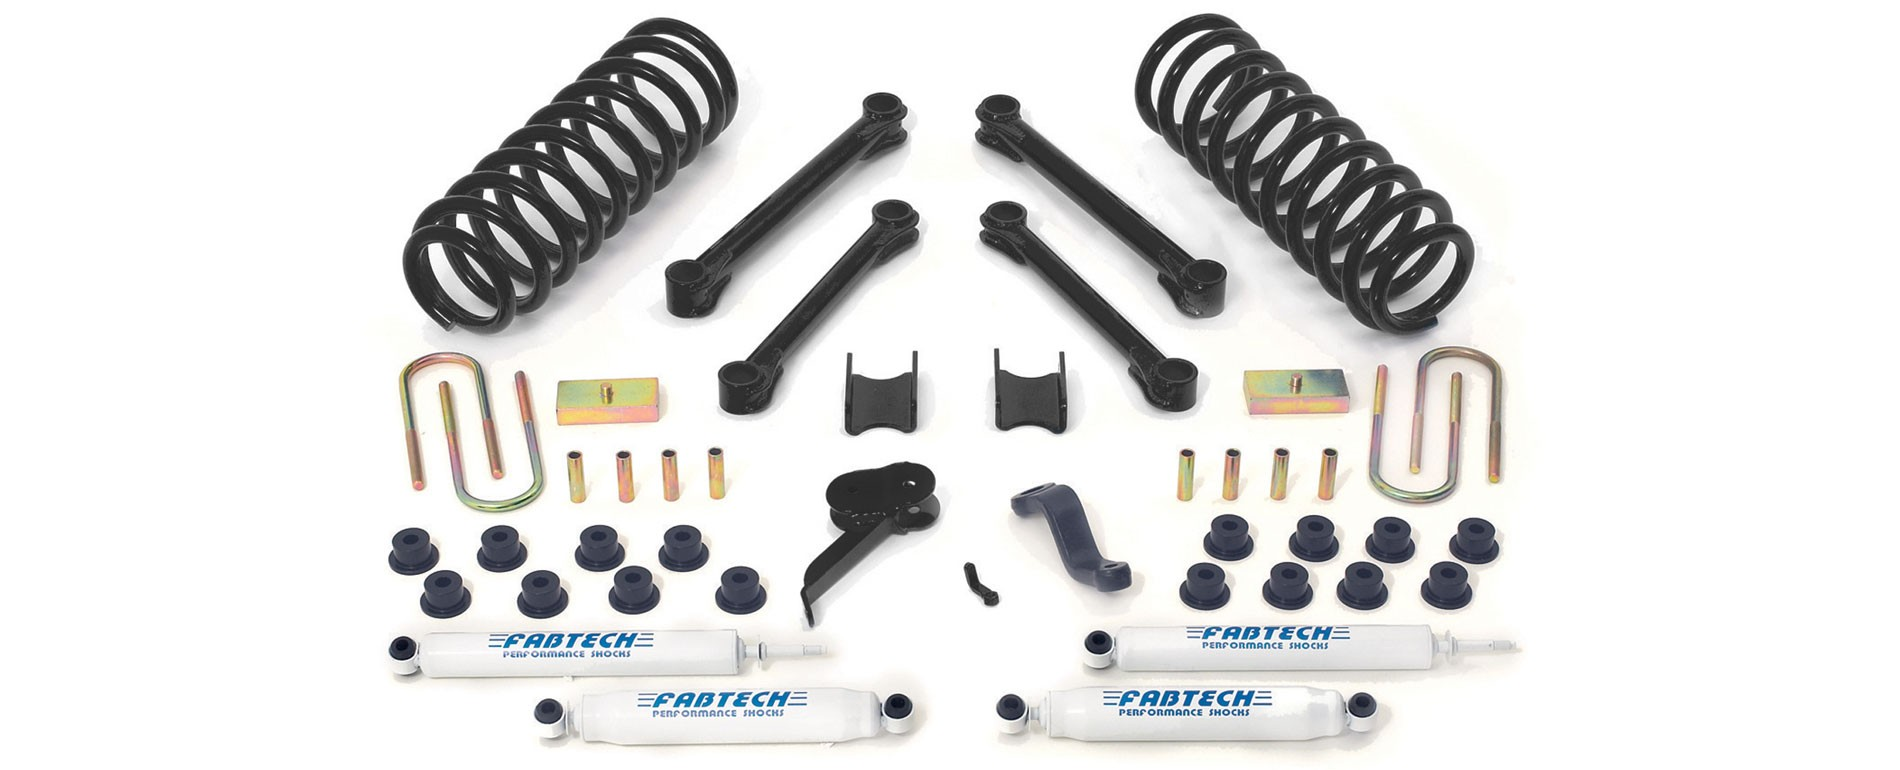 "FABTECH - 2009-13 Dodge/Ram 2500/3500 4WD -Diesel Only 4.5"" Performance System w/ Performance Shocks"